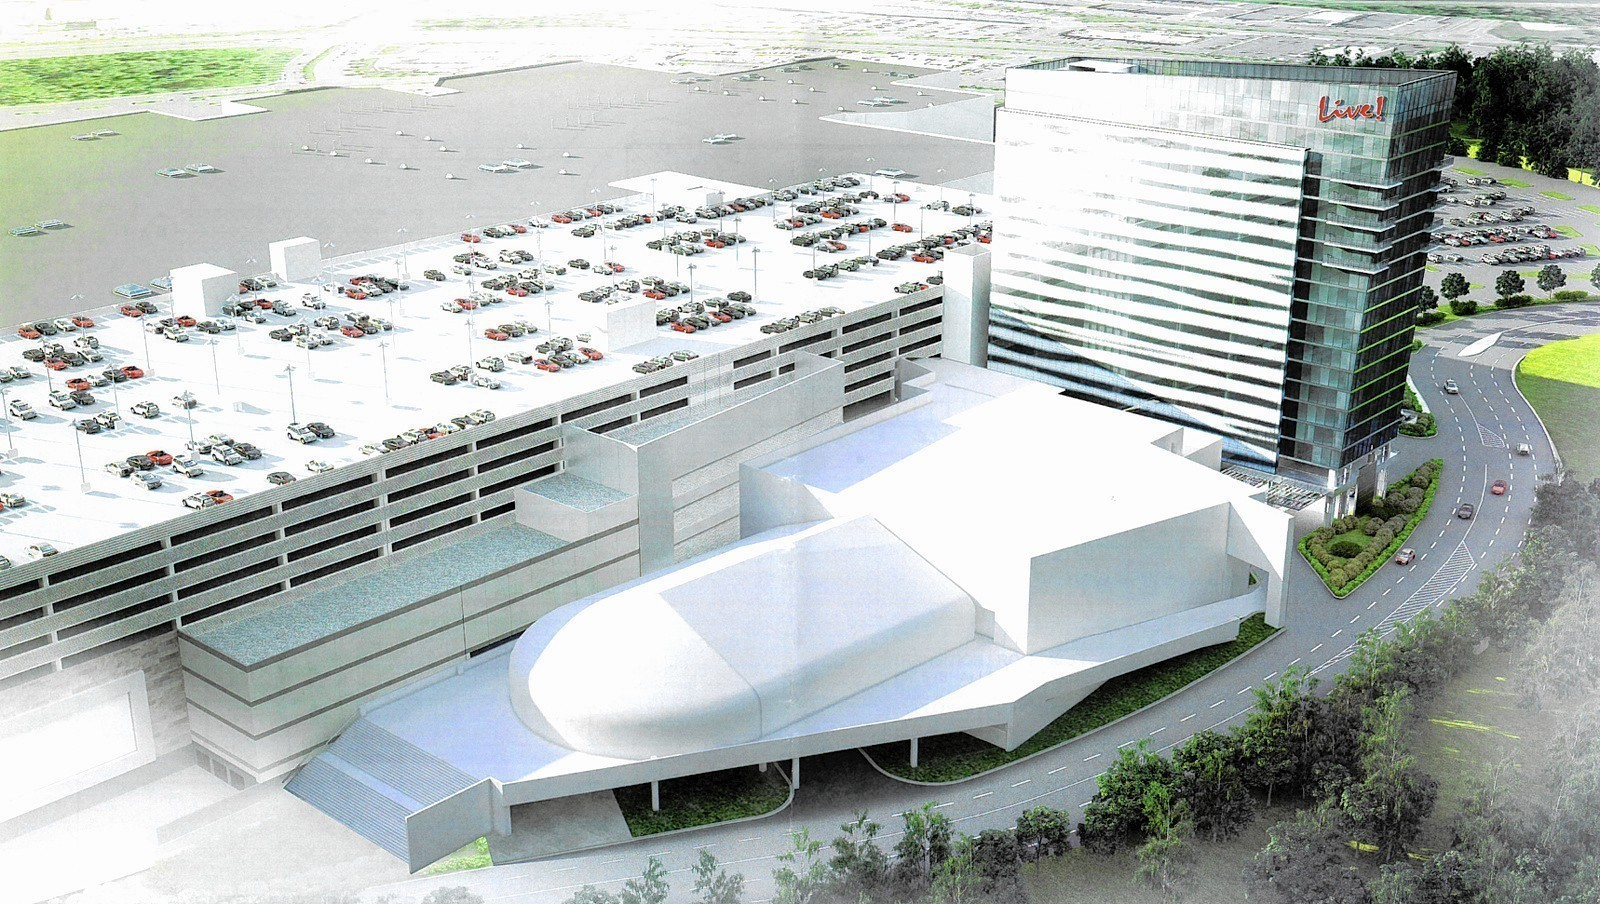 Maryland Live plans reveal 18-story hotel proposal at casino site ...